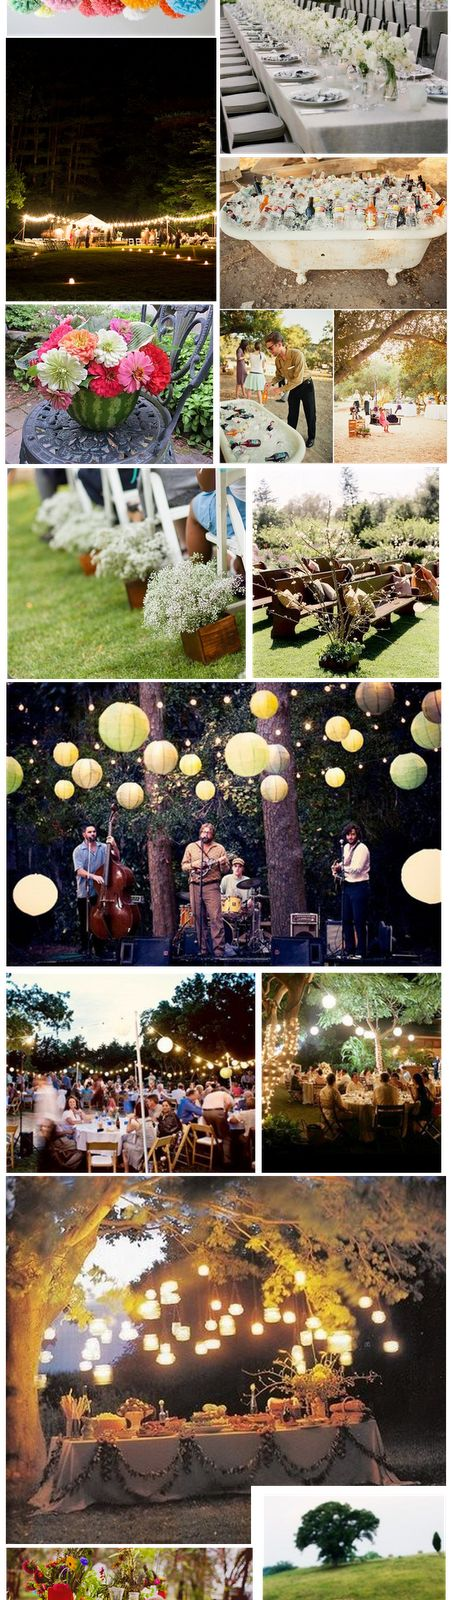 - Bodas Colorín Colorado -: - Decoración Bodas al Aire Libre